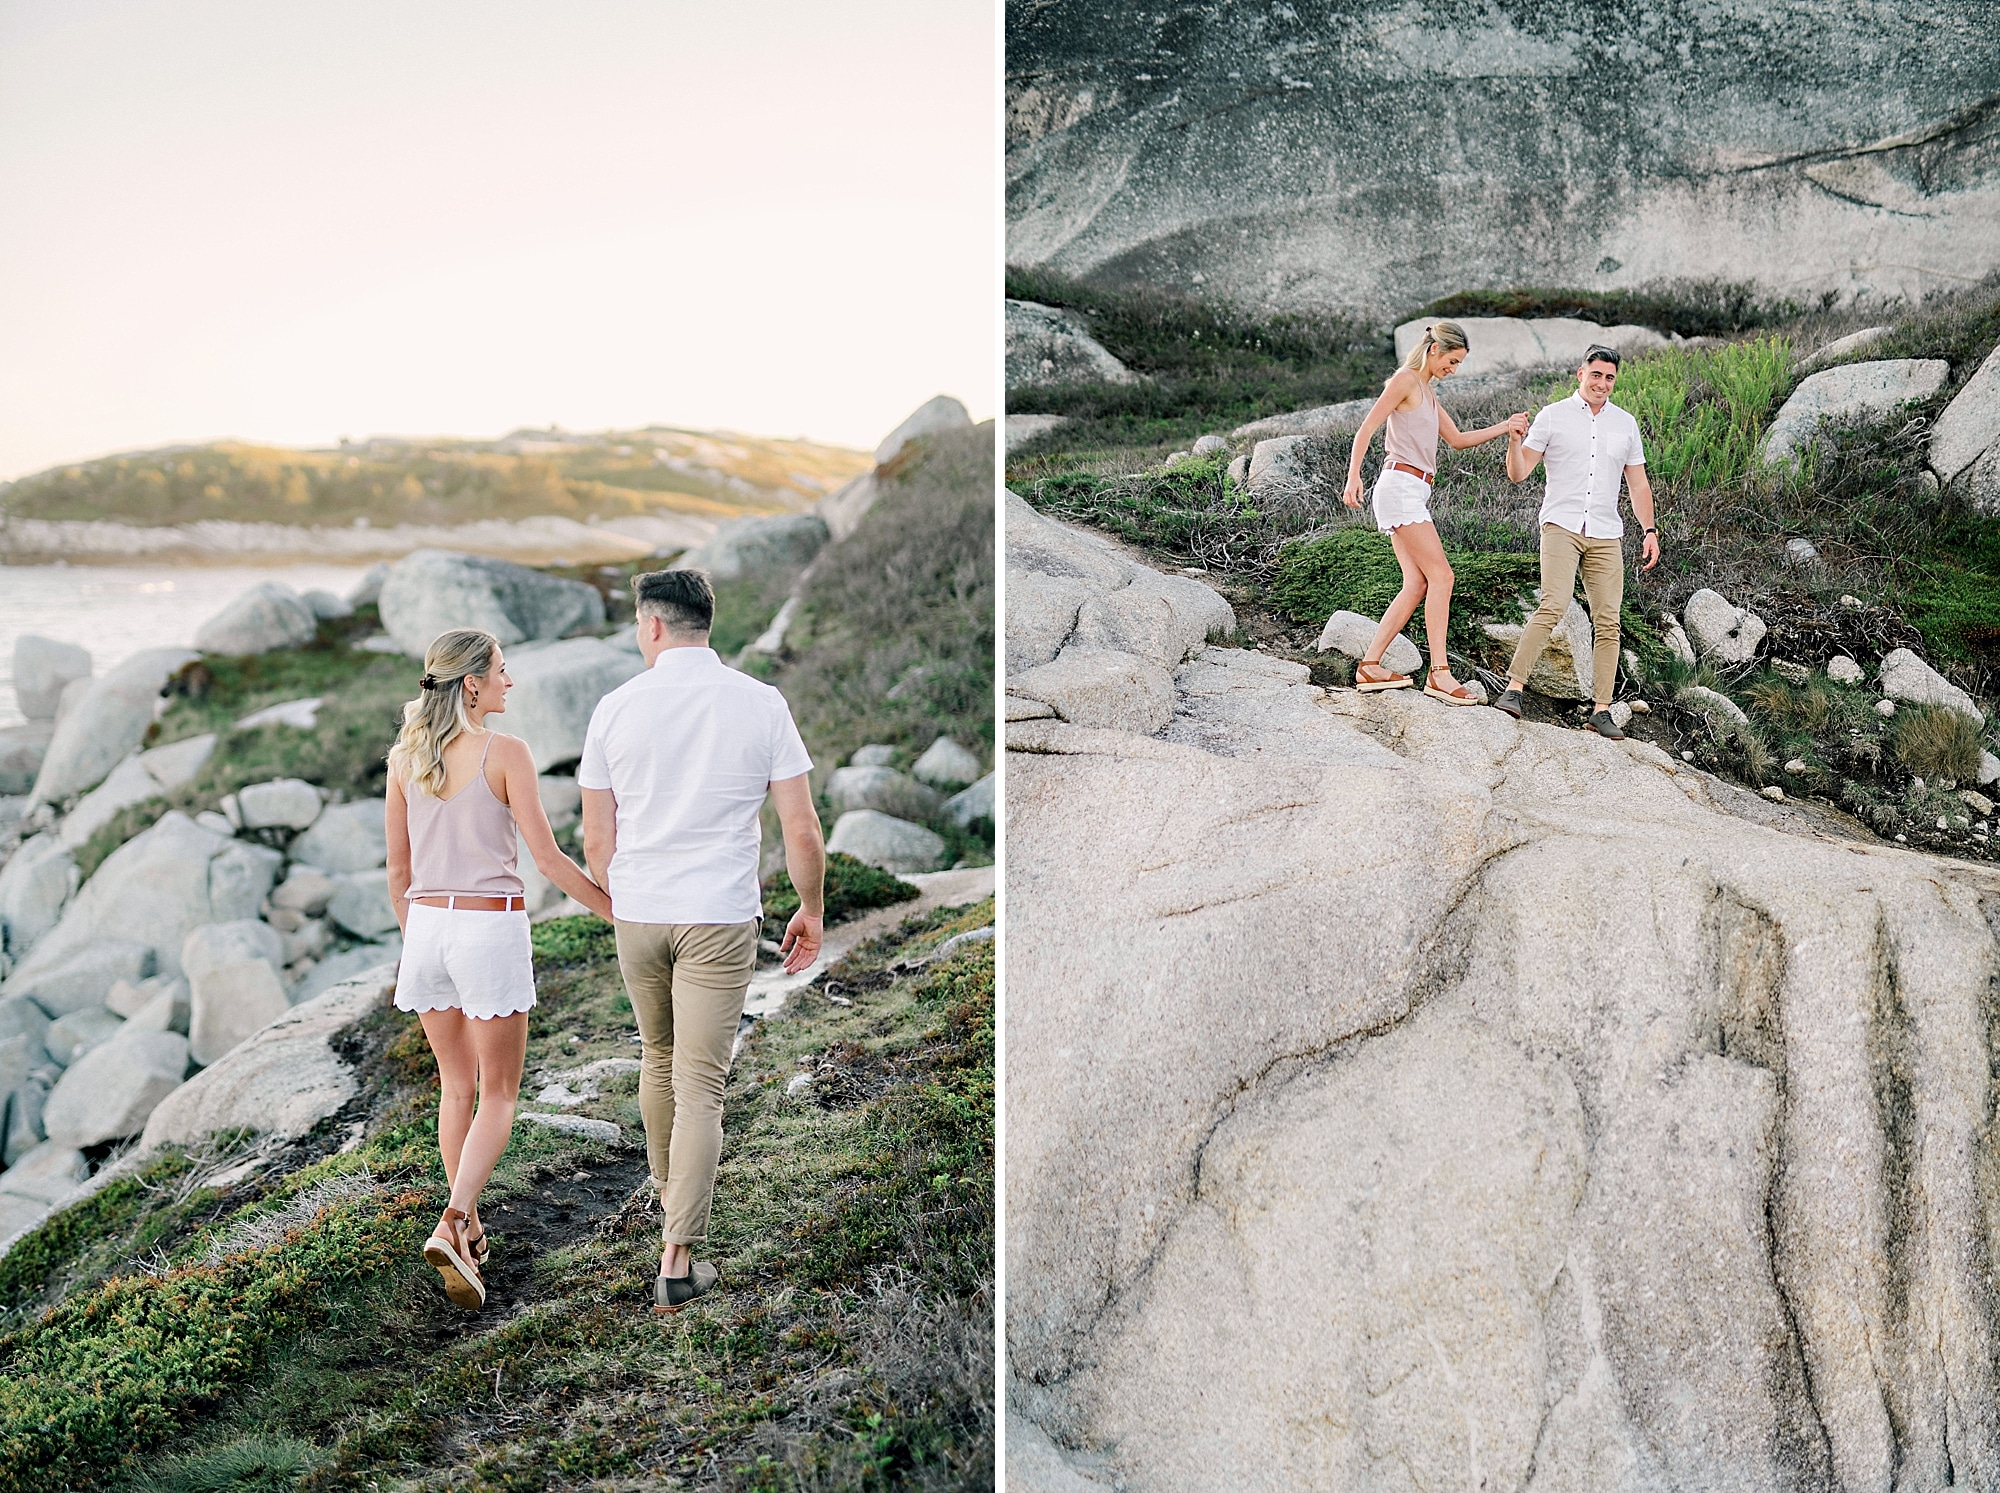 hiking down the rocks during an engagement session by candace berry photography